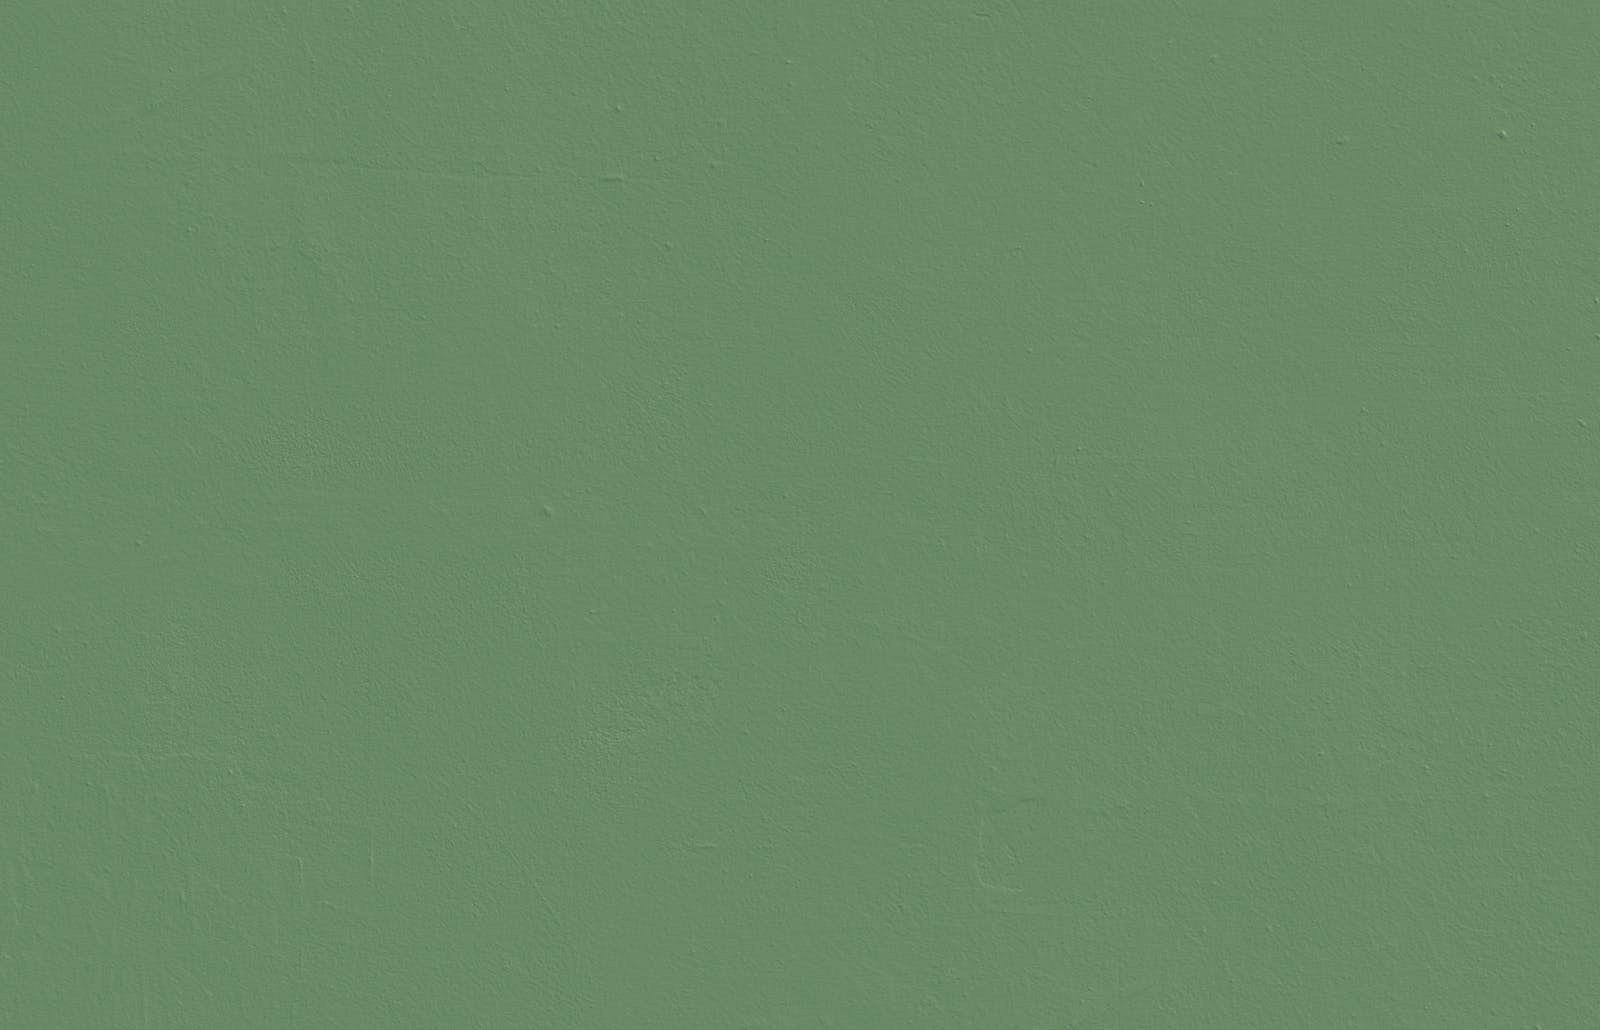 Textured wall painted in Lick Green 07 paint